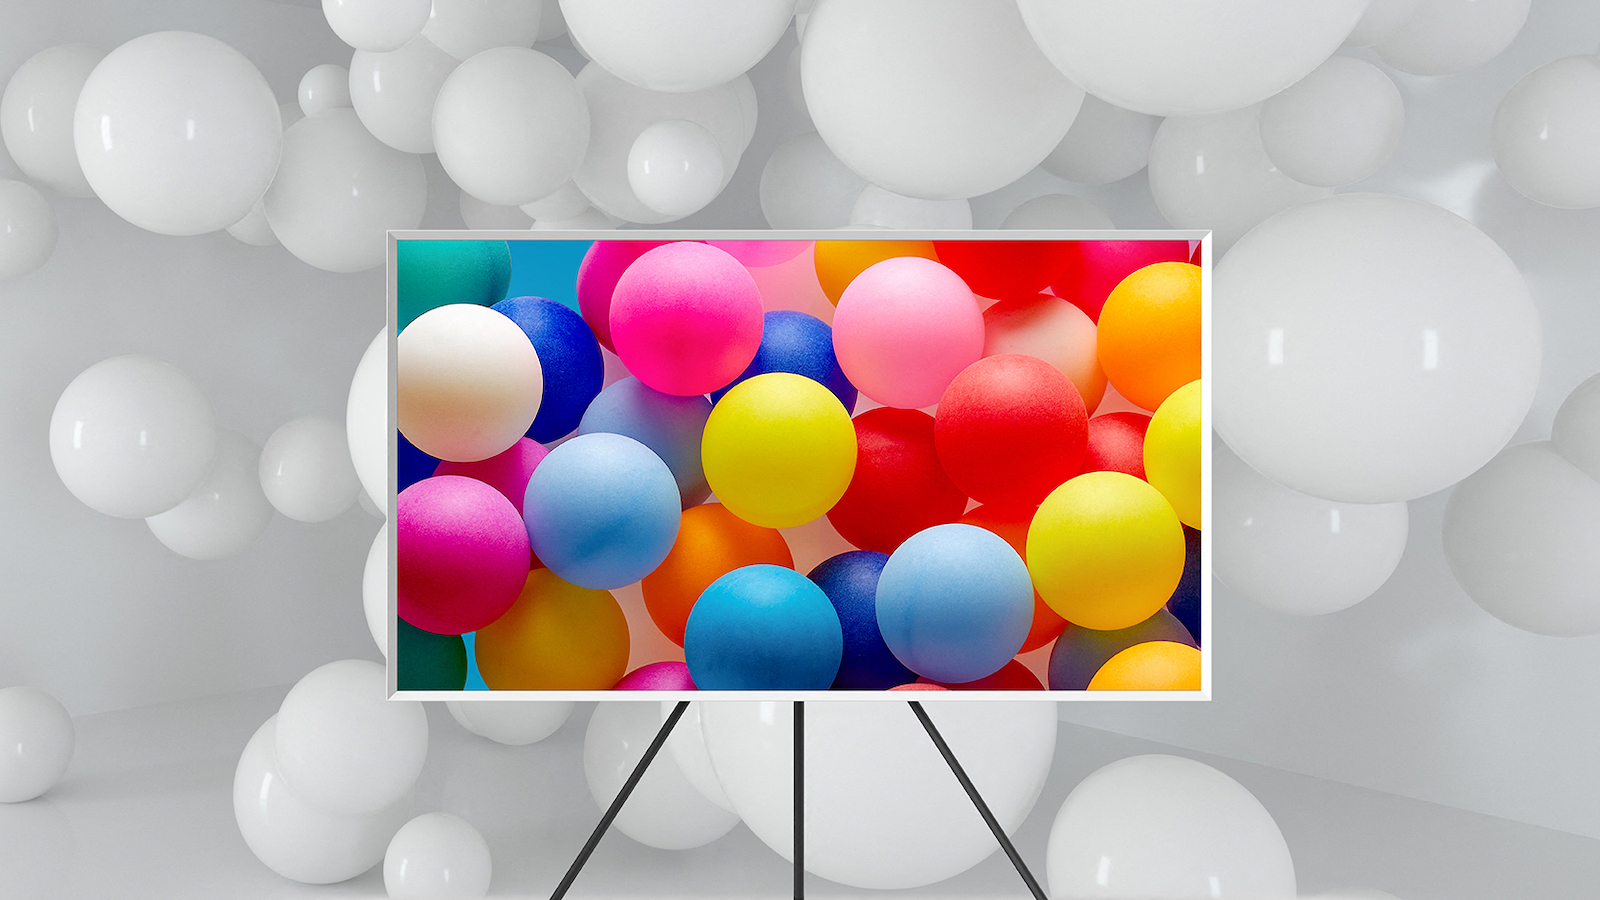 Samsung The Frame 2021 lifestyle TV transforms your television into a work of art